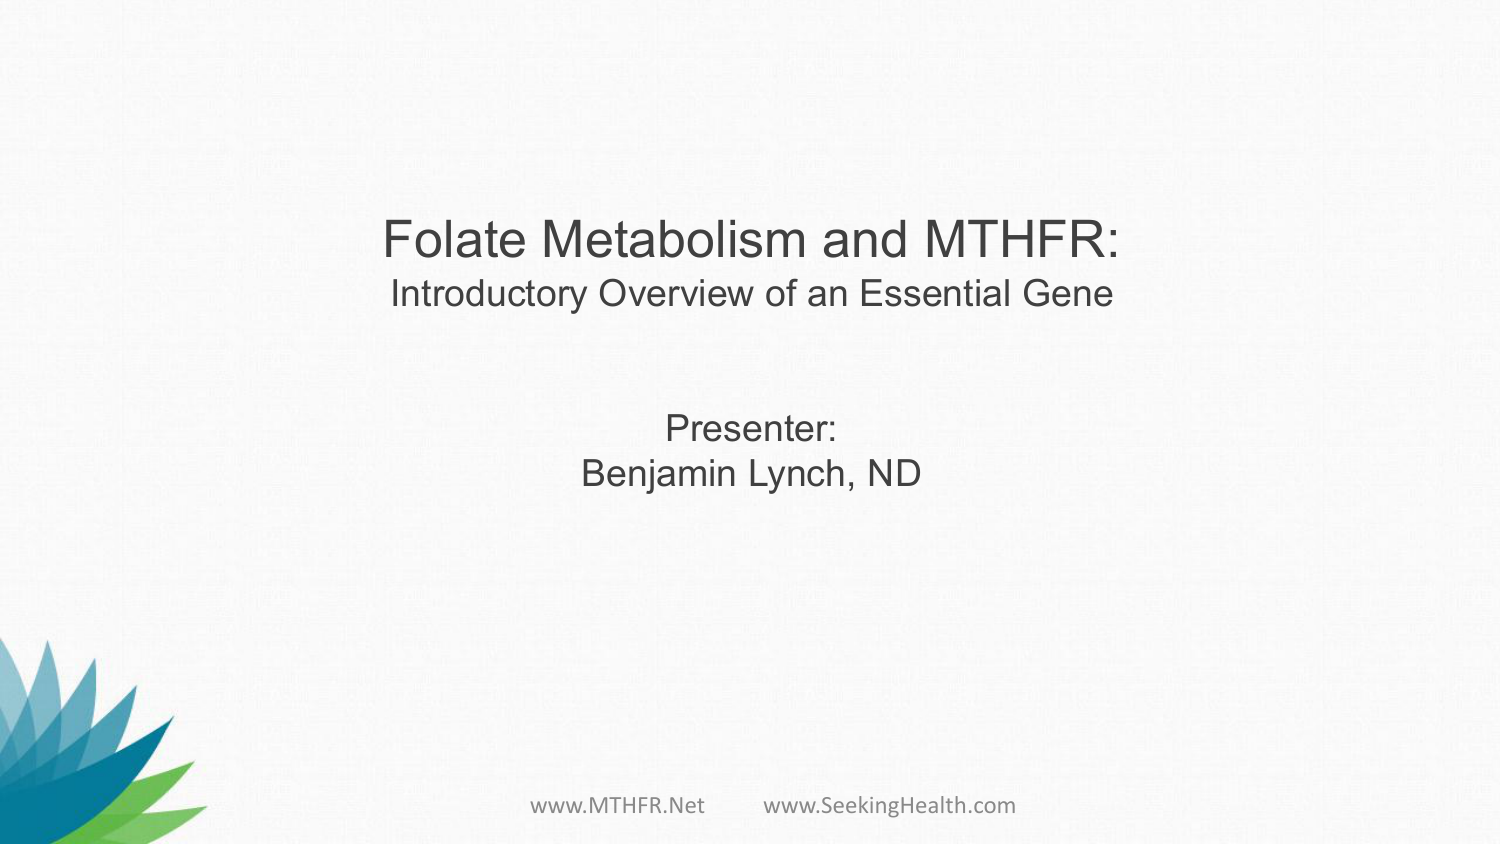 Folate Metabolism and MTHFR